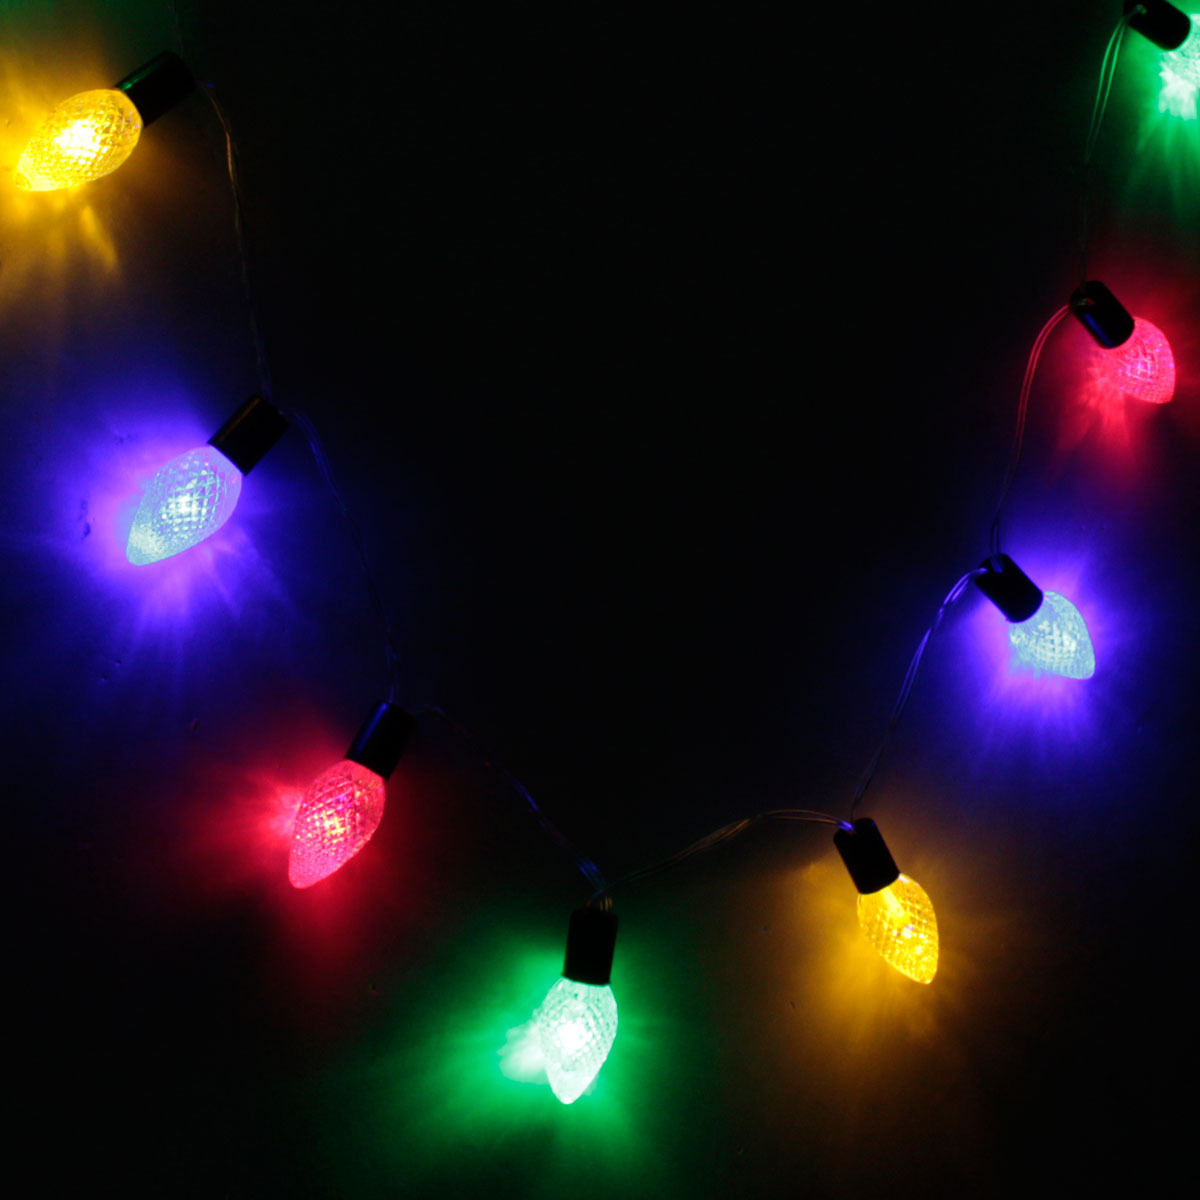 String Lights Shapes : 10 PCS Conical Shape String Lights Christmas Holiday Wedding Party Decoration eBay